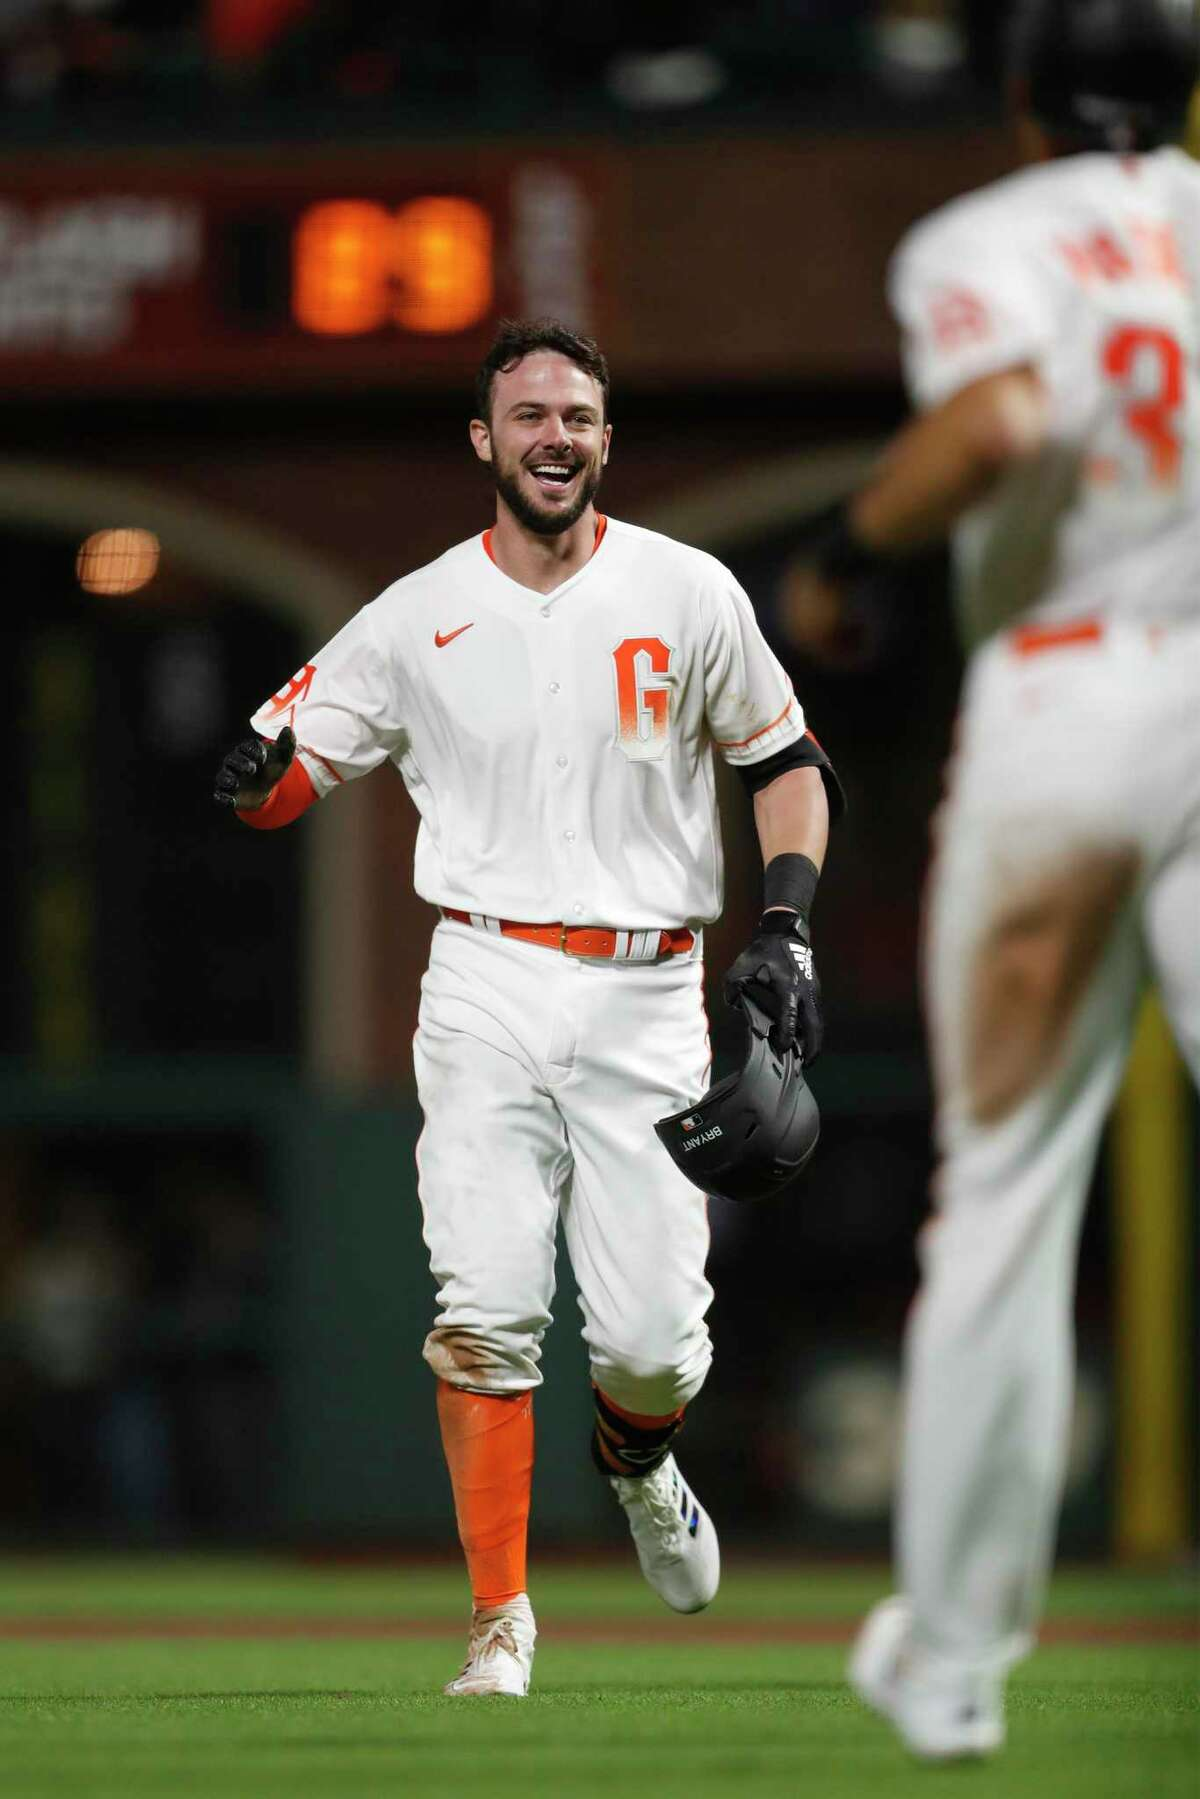 San Francisco Giants' Kris Bryant celebrates after the Arizona Diamondbacks' Christian Walker committed an error giving the Giants an 8-7 win in MLB game at Oracle Park in San Francisco, Calif., on Tuesday, August 10, 2021.